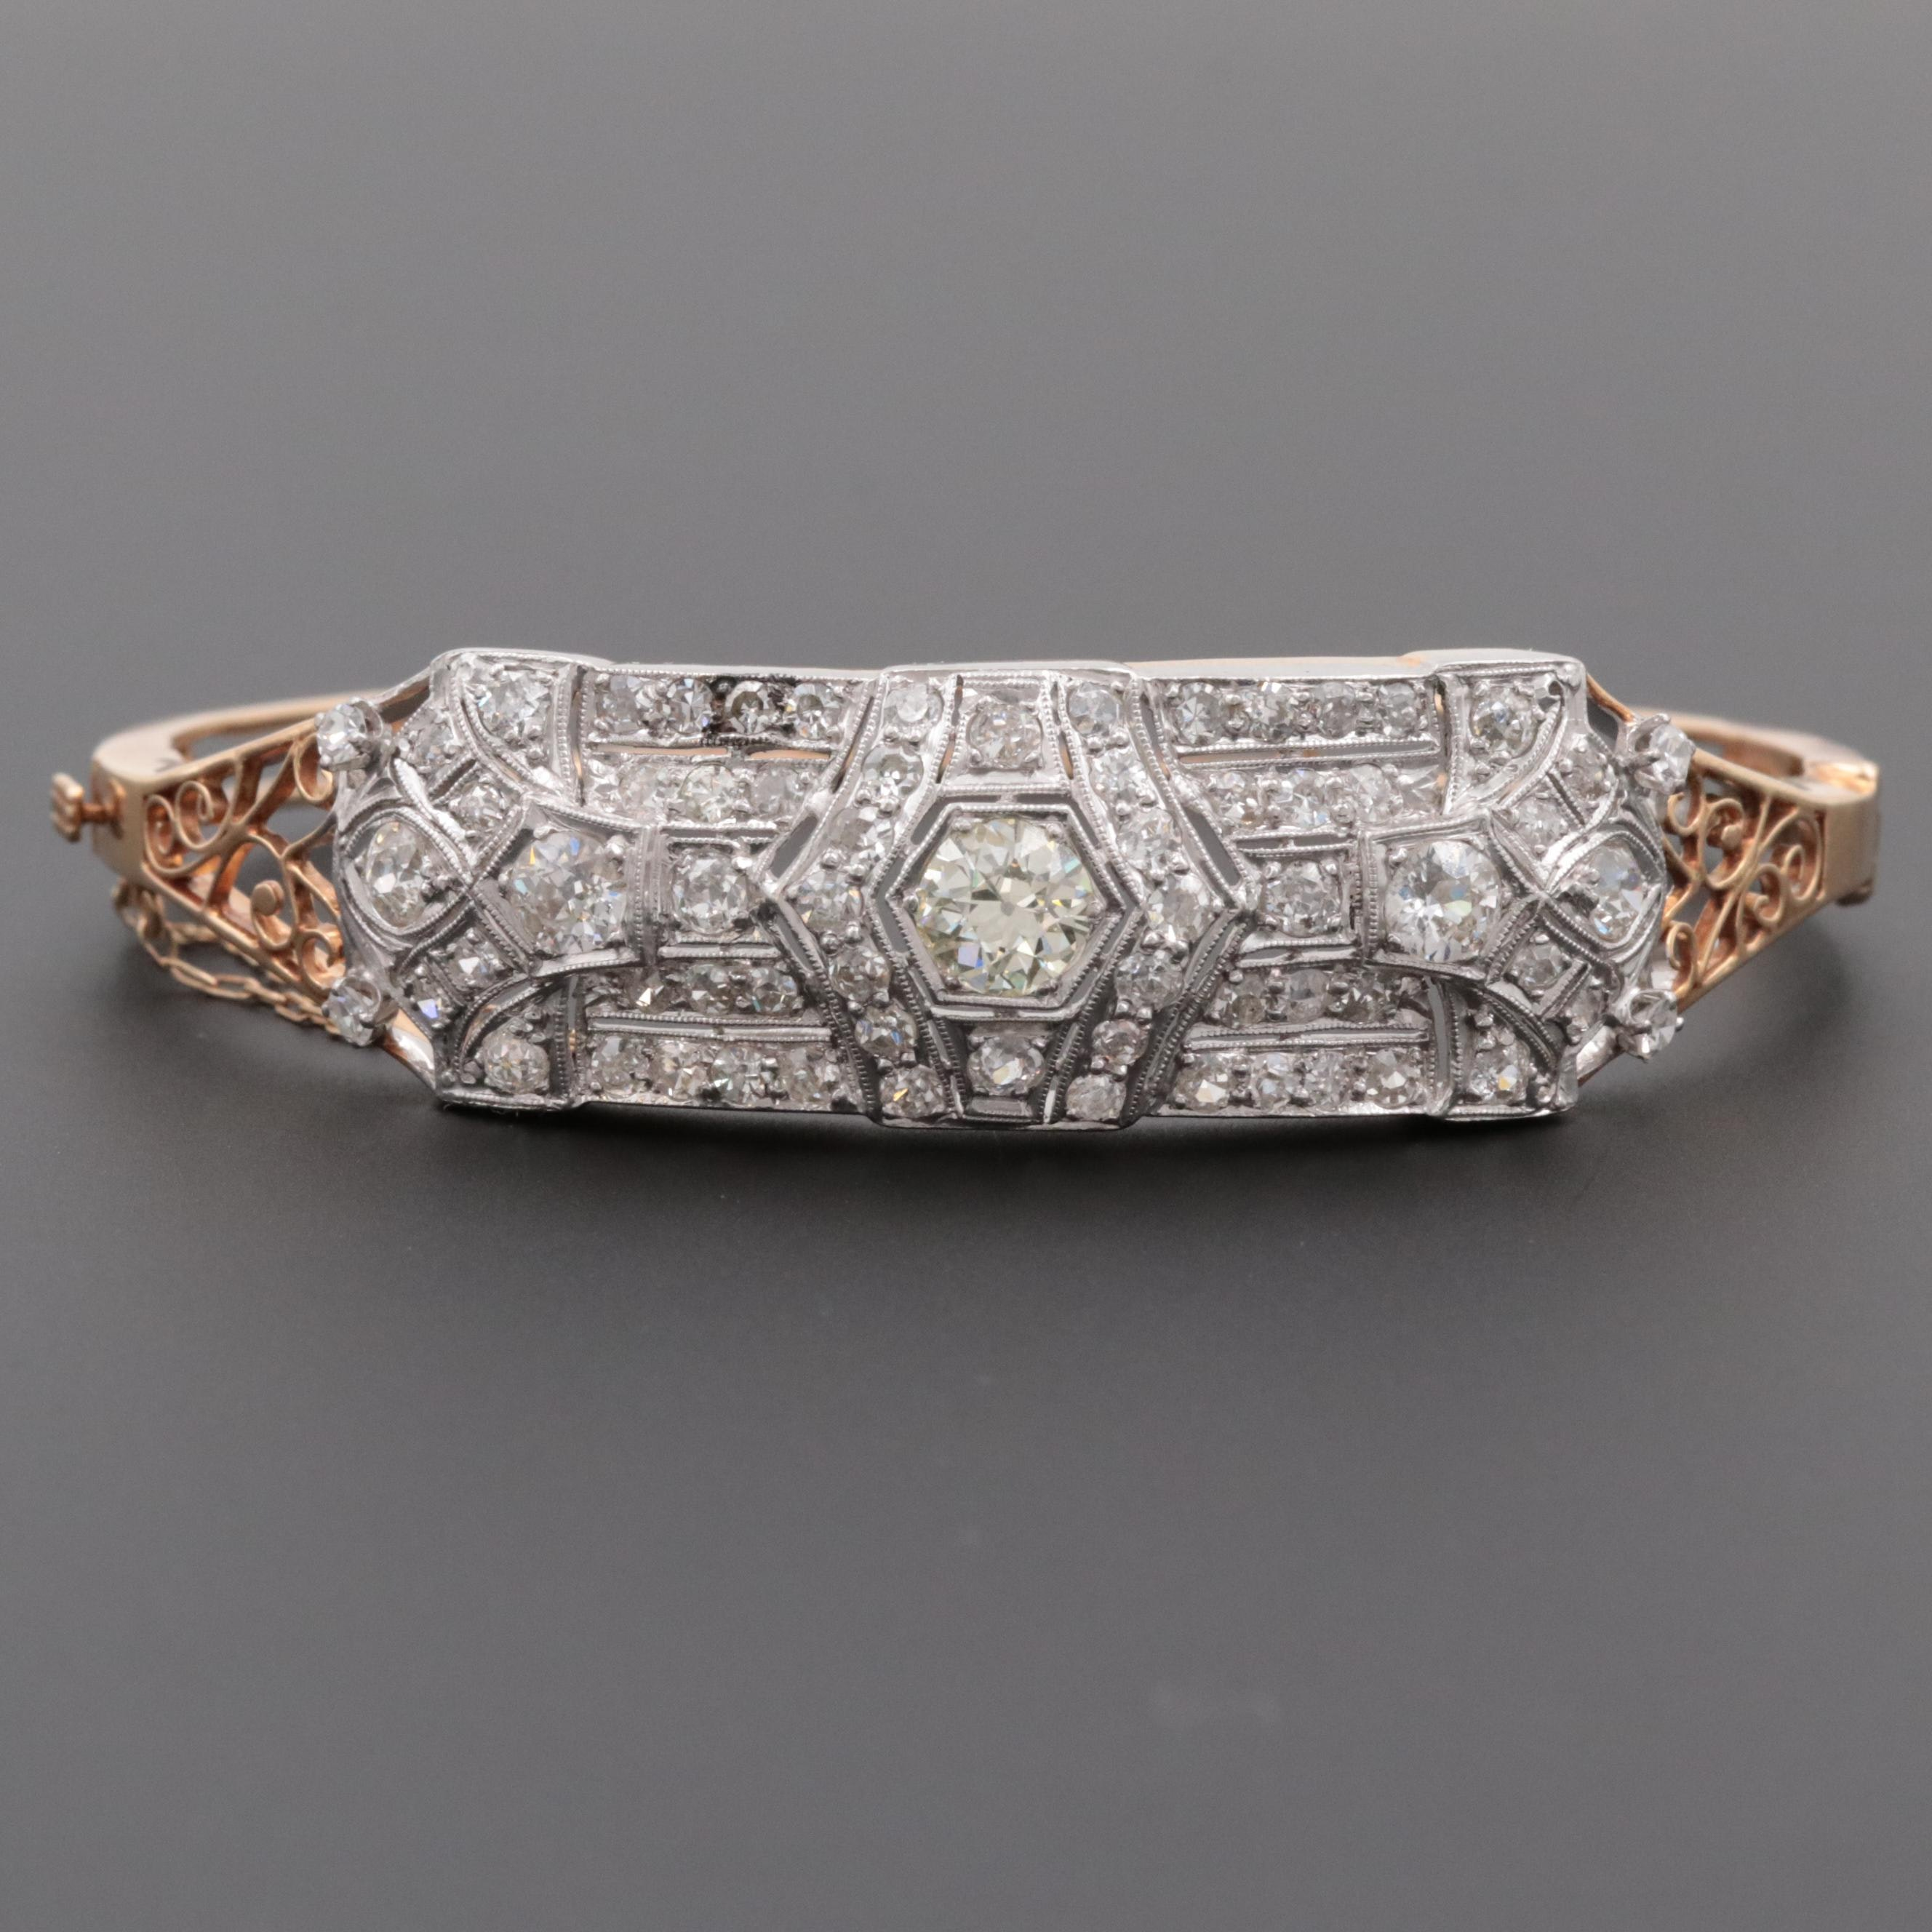 Art Deco 14K Yellow Gold 4.48 CTW Diamond Bangle Bracelet with Platinum Trim